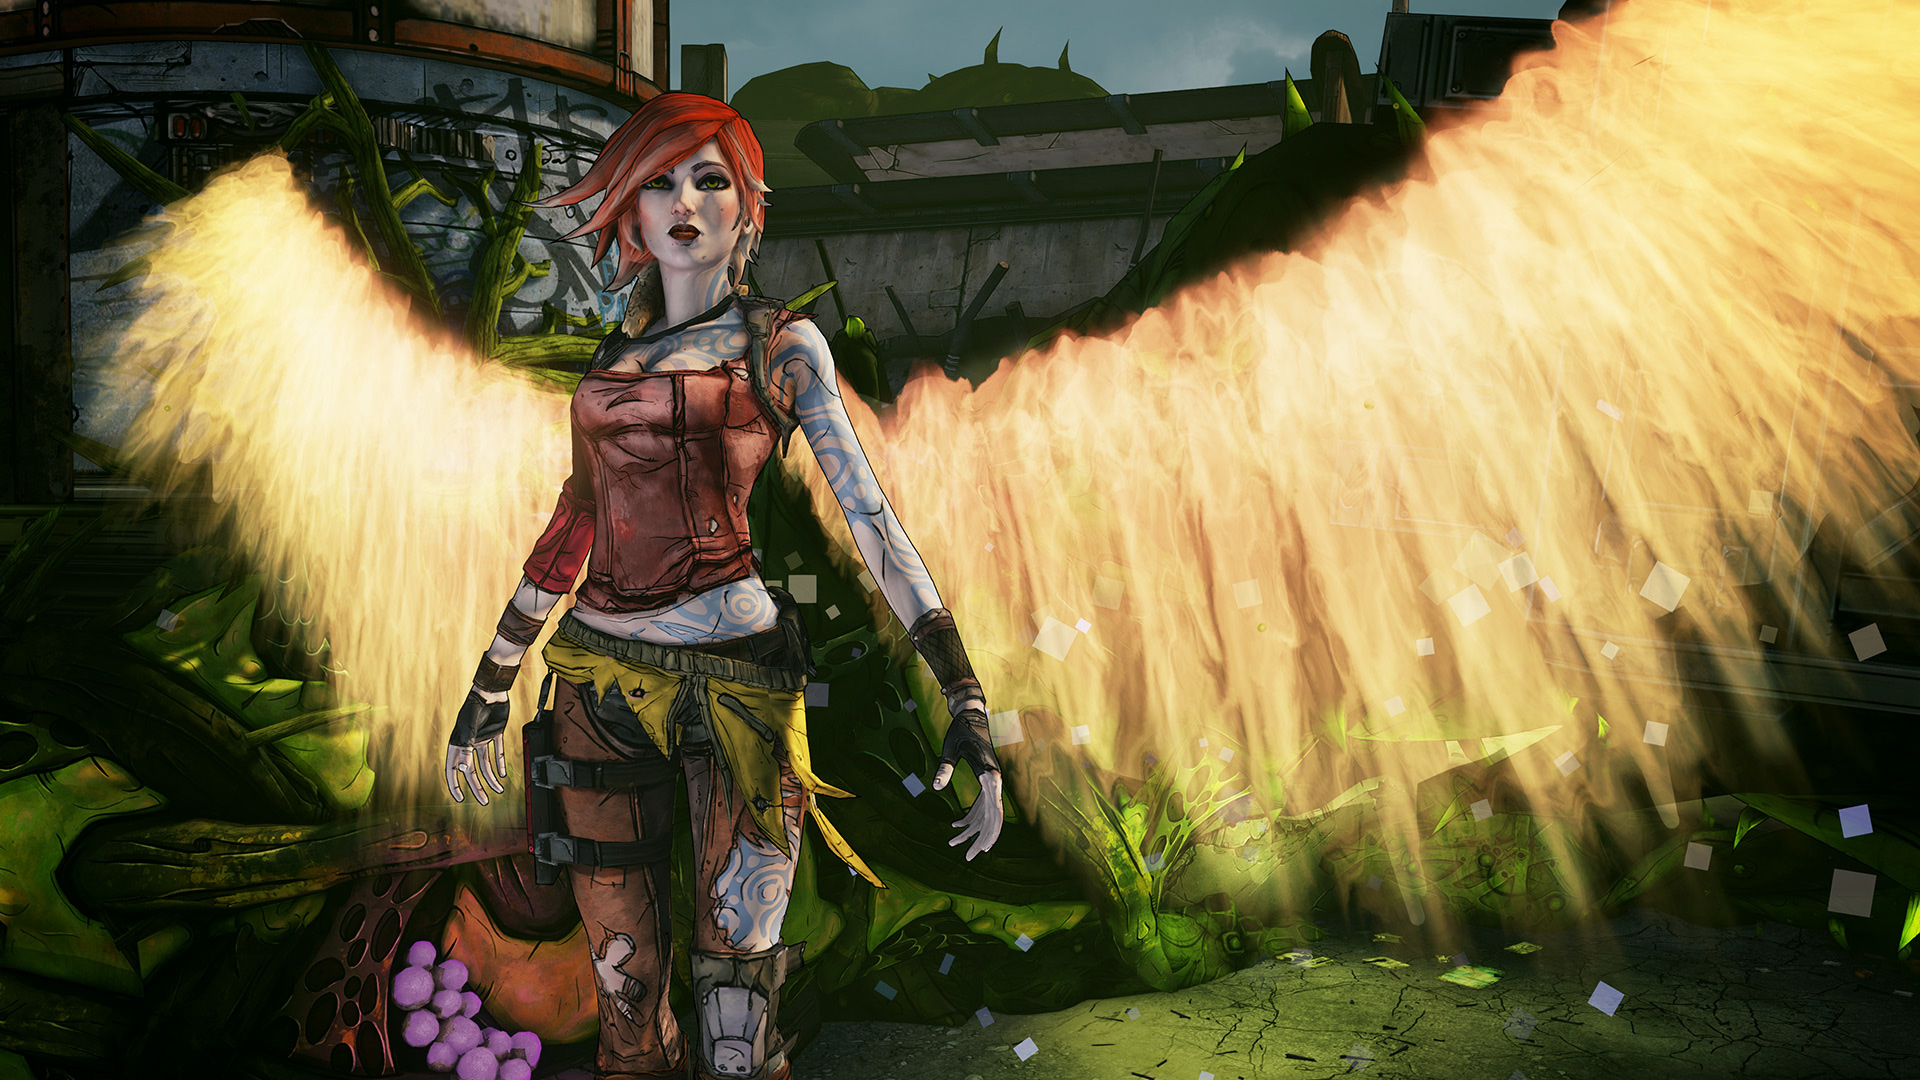 Borderlands 2 is working again on Nintendo Switch with the new update